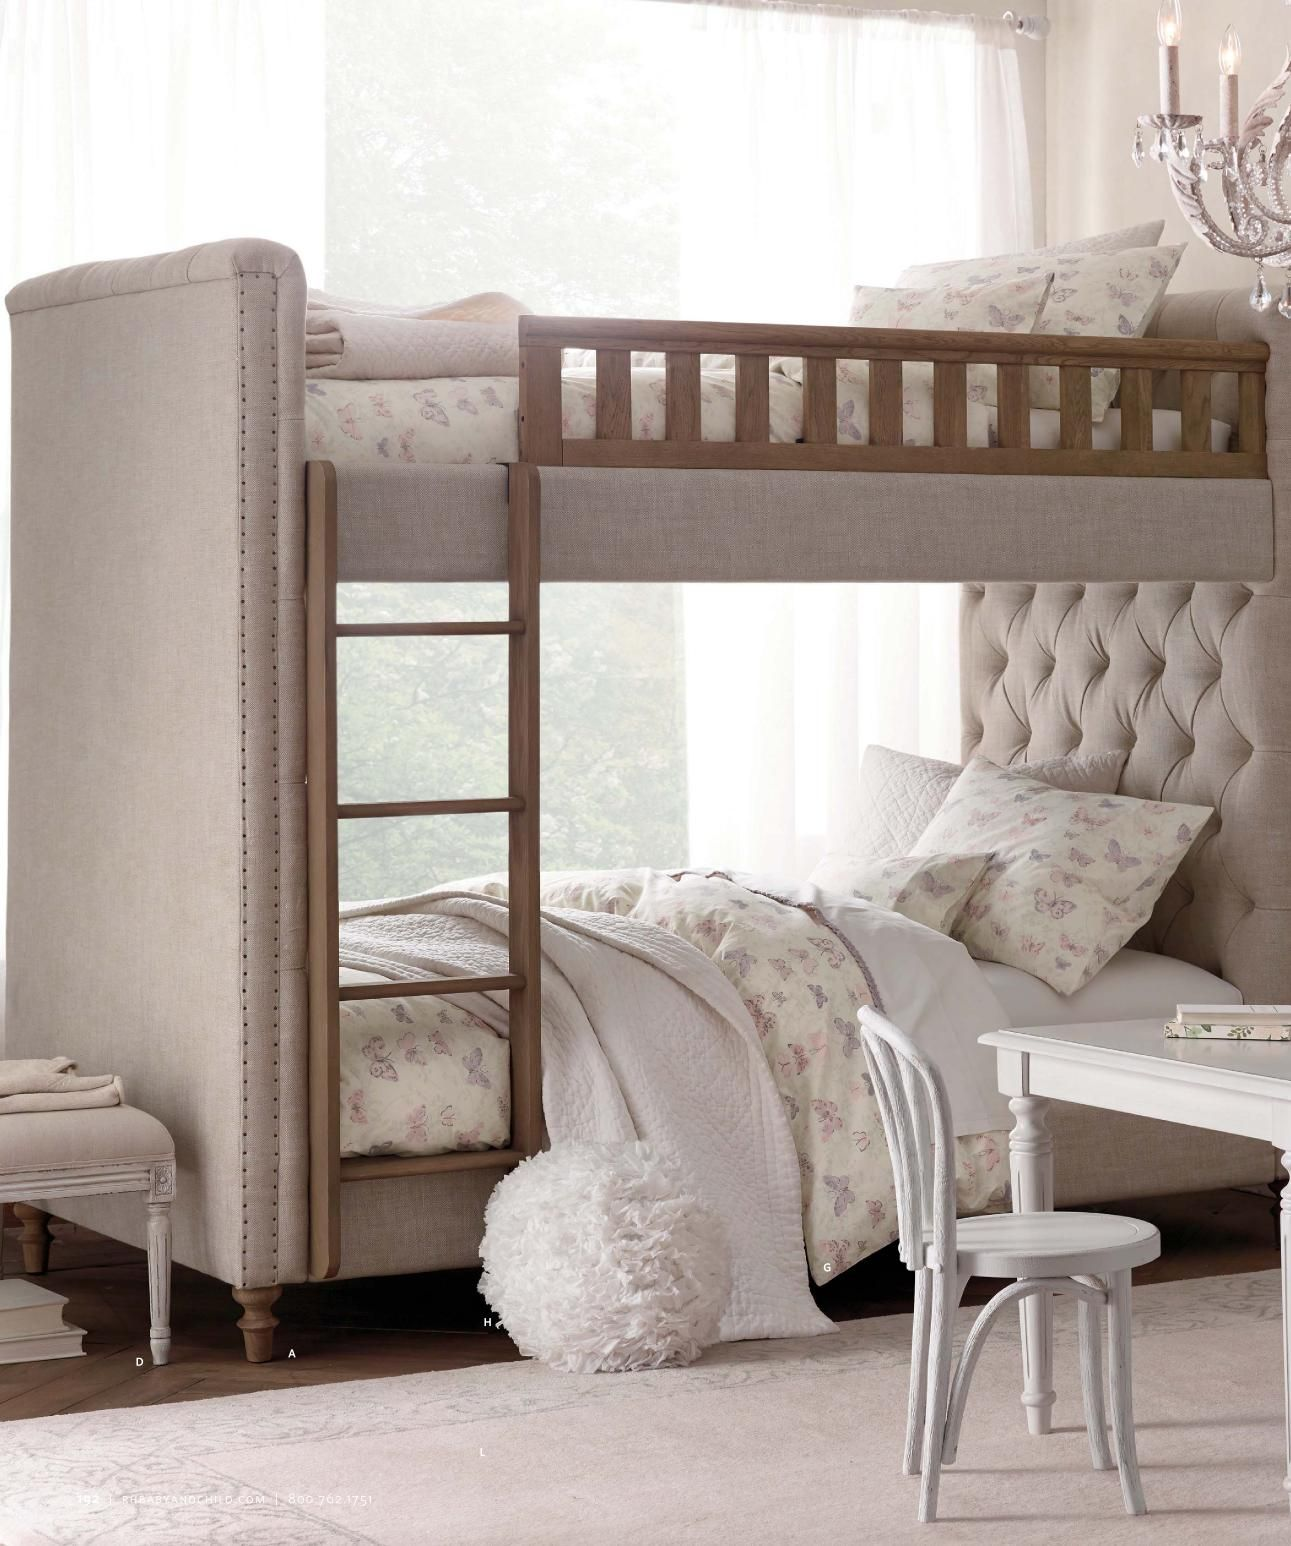 2014 Spring Catalog RH Baby & Child Bunk beds, Rustic